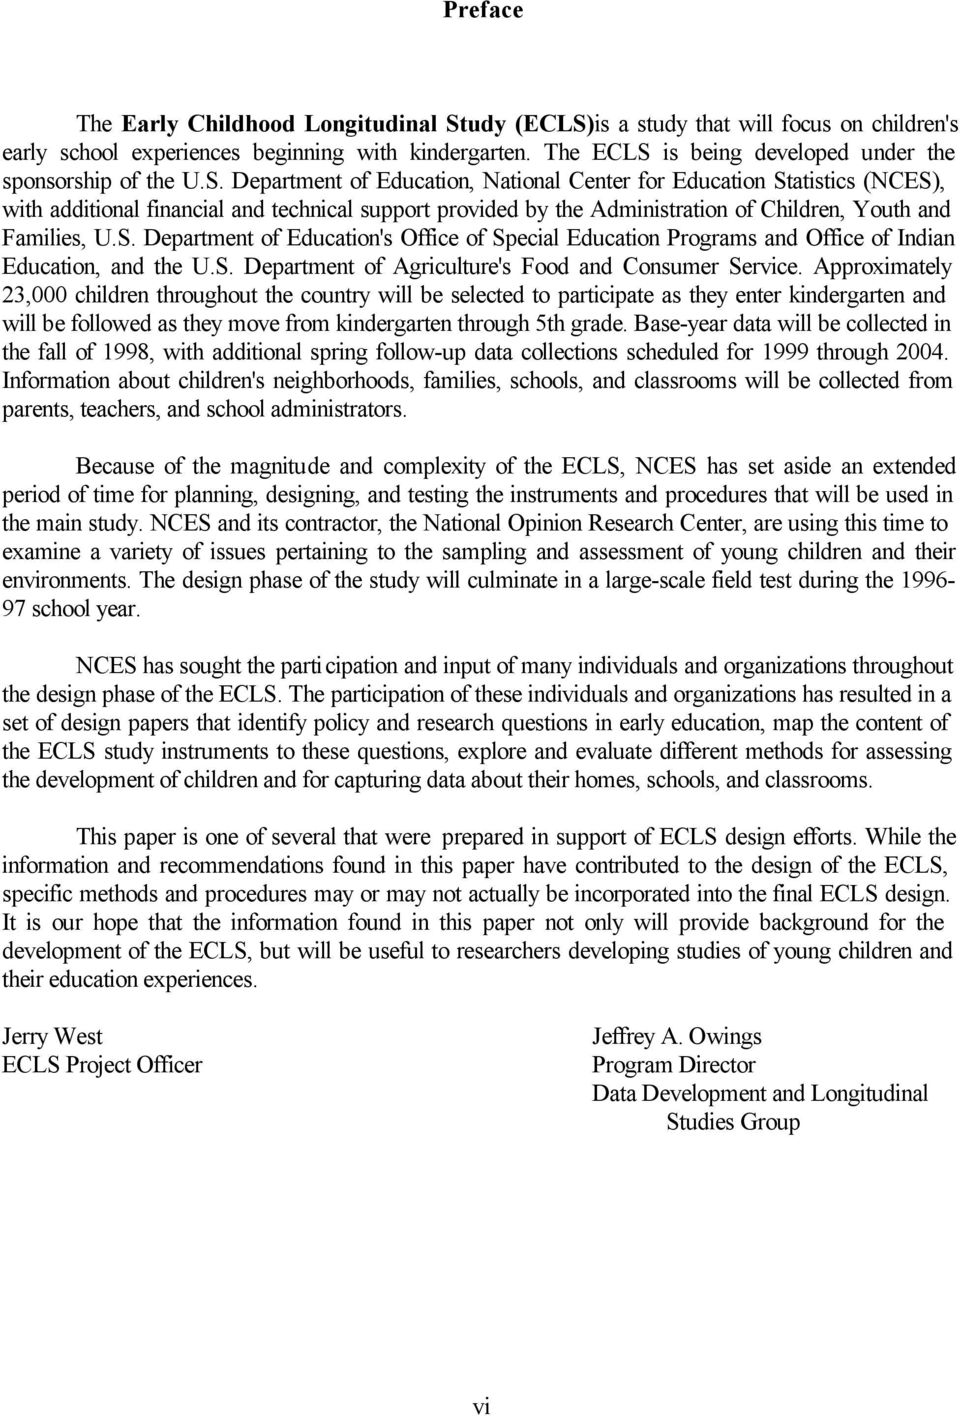 S. Department of Education's Office of Special Education Programs and Office of Indian Education, and the U.S. Department of Agriculture's Food and Consumer Service.